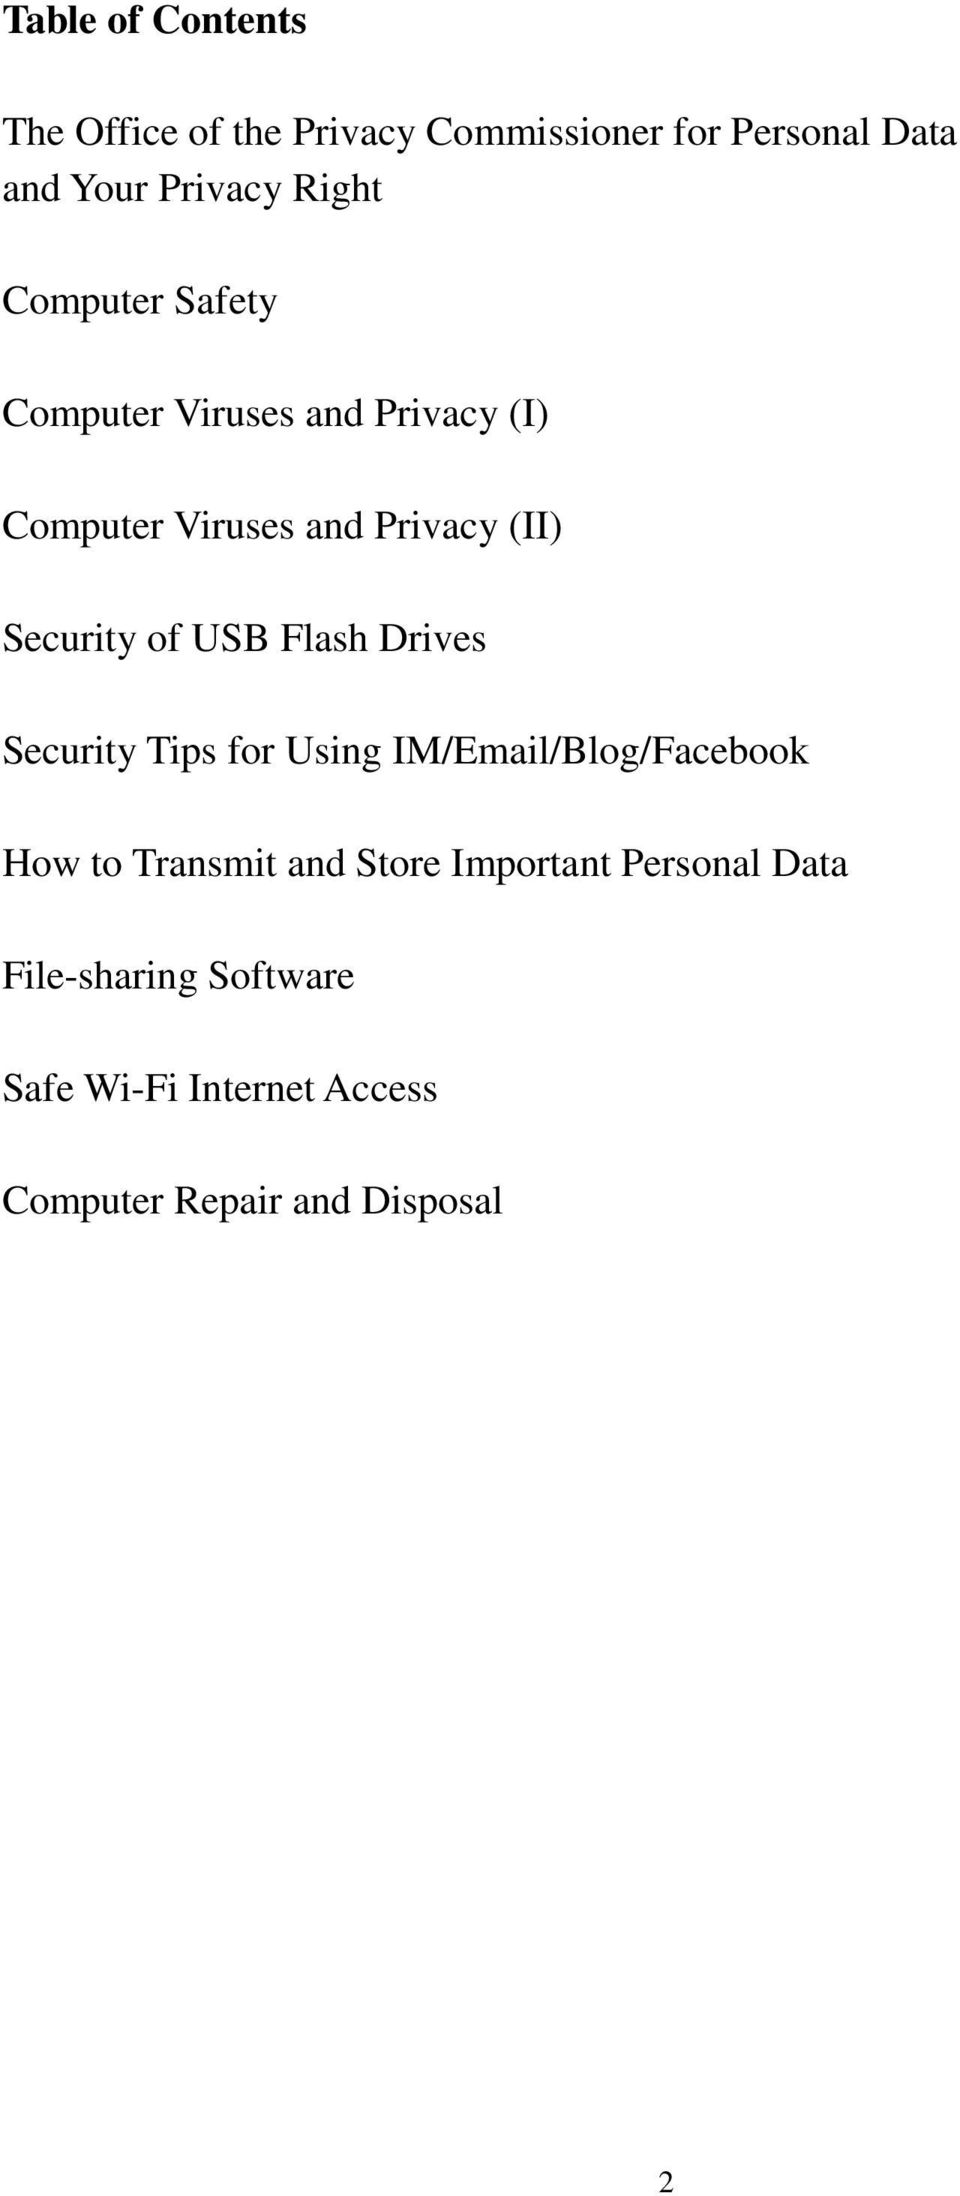 Security of USB Flash Drives Security Tips for Using IM/Email/Blog/Facebook How to Transmit and